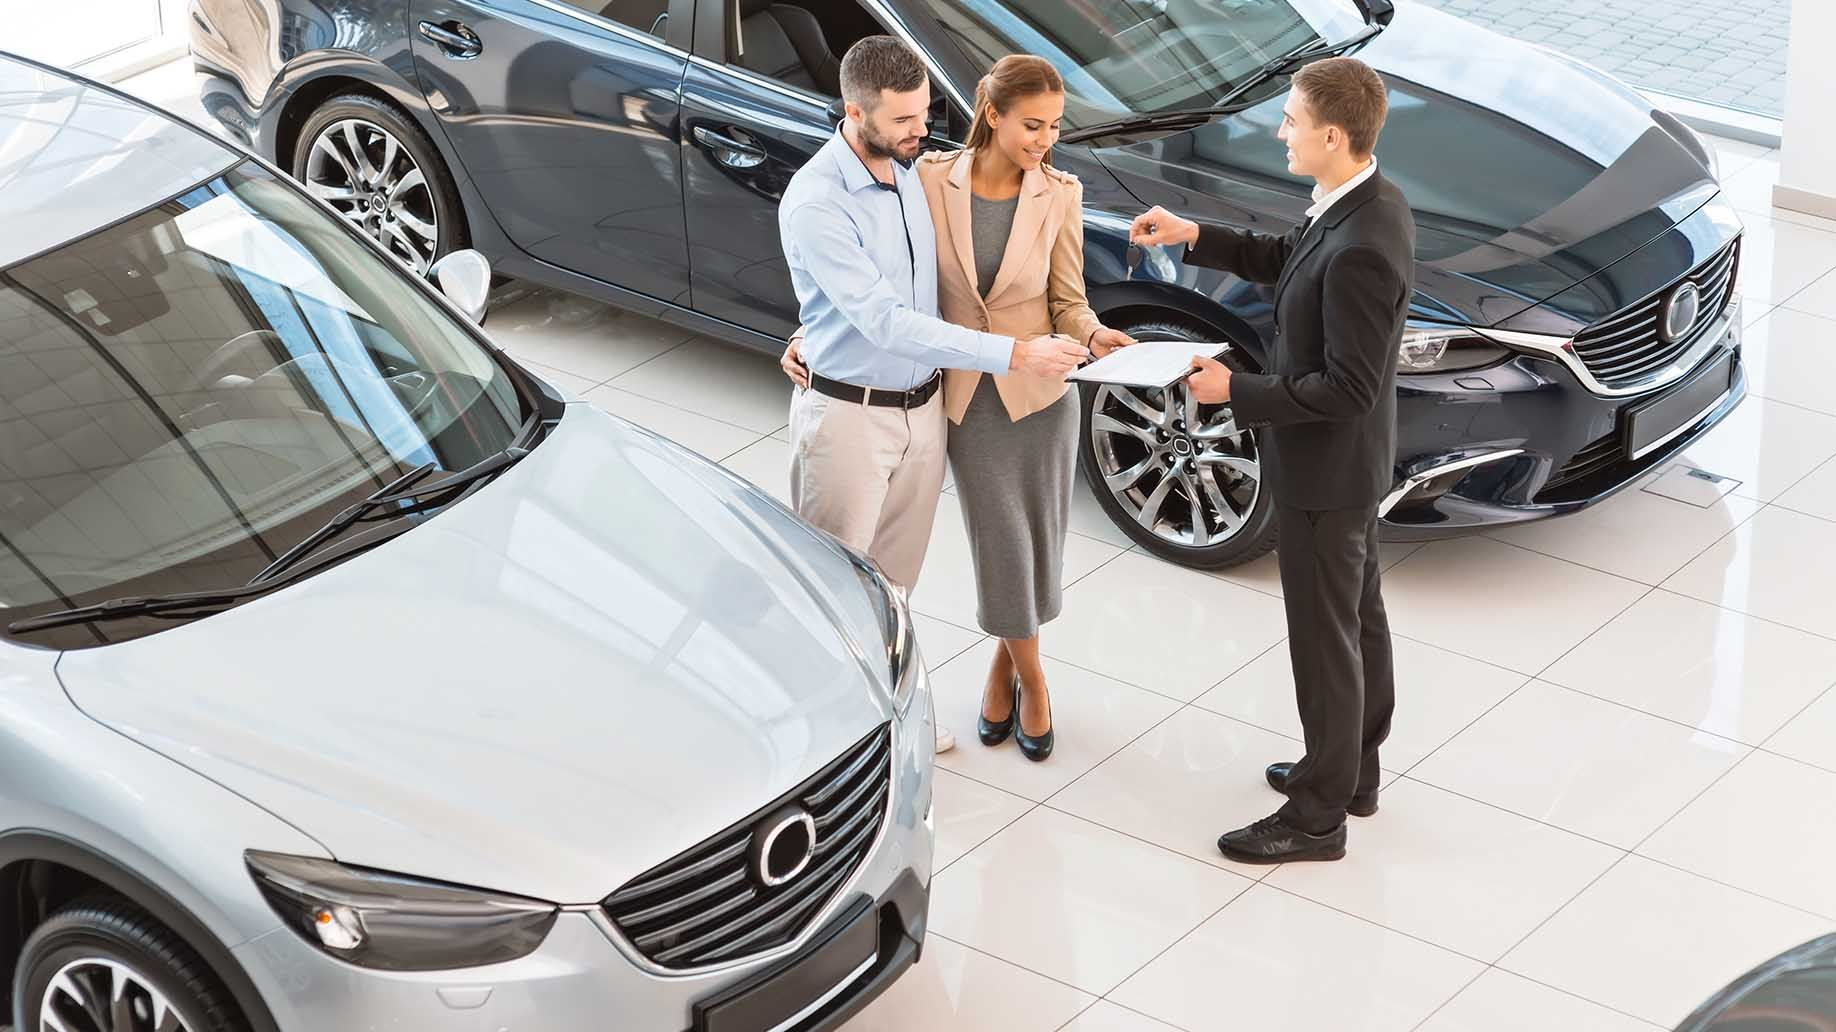 How to Buy a Car 15 Essential Tips to Get the Best Deal